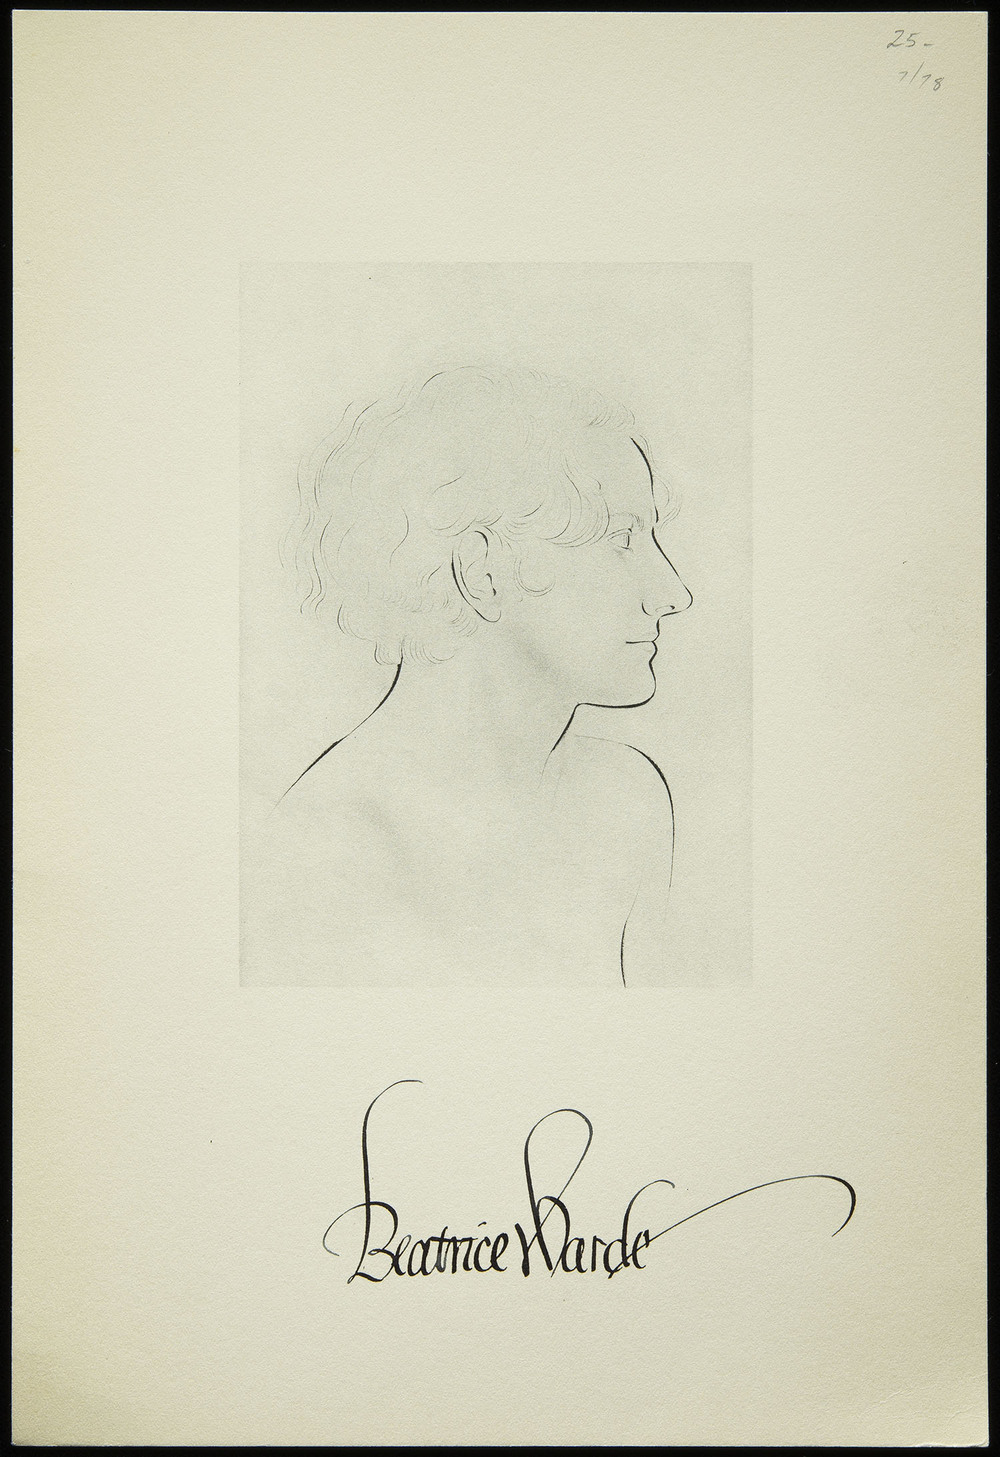 Eric Gill, Keepsake on the occasion of introducing Beatrice Warde to friends of Print , signed by Warde, Bethany CT, 1942, 16.5 x 24.3 cm